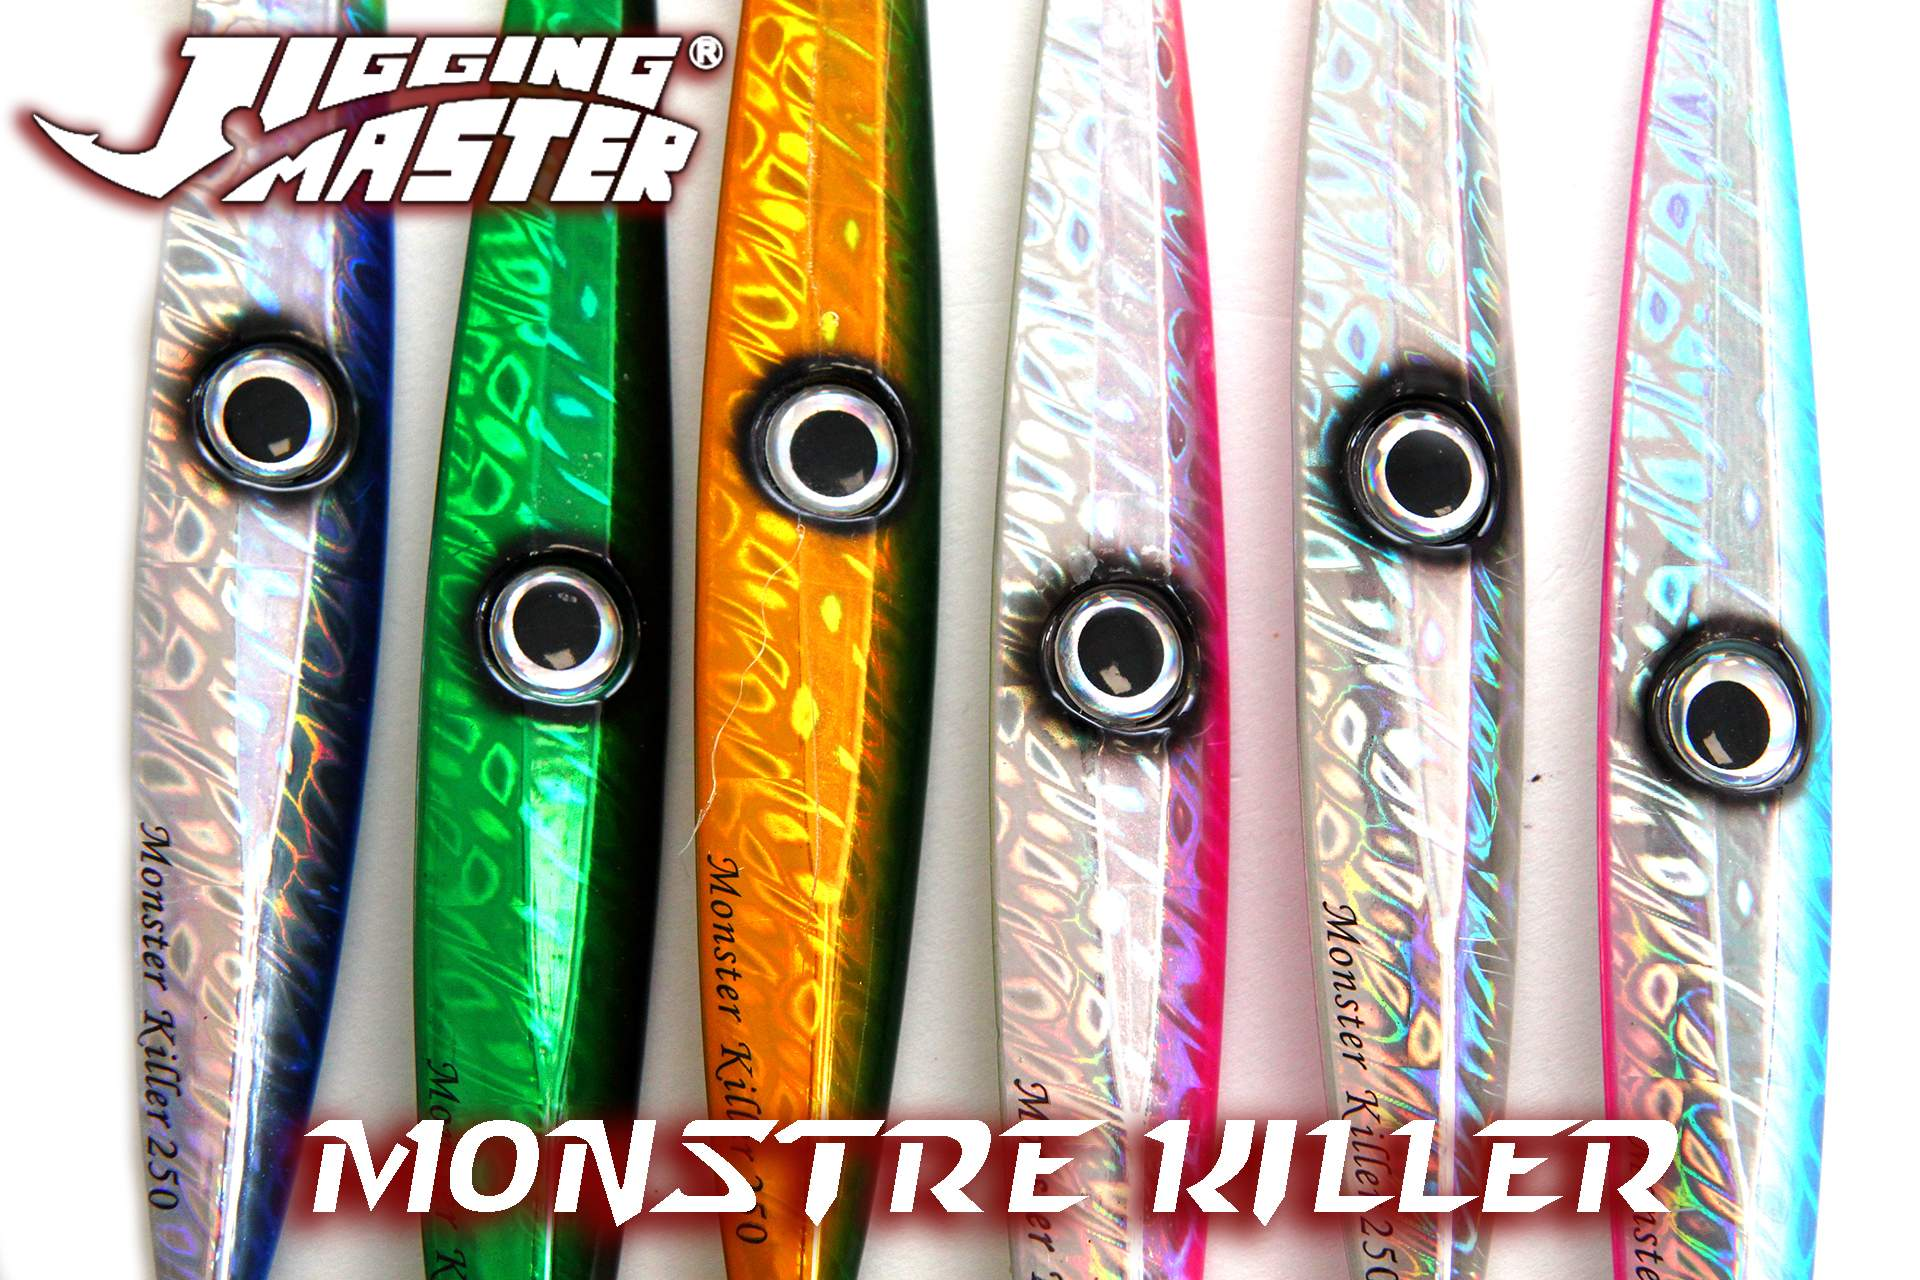 Пилькер Jigging Master Monster Killer jig #6